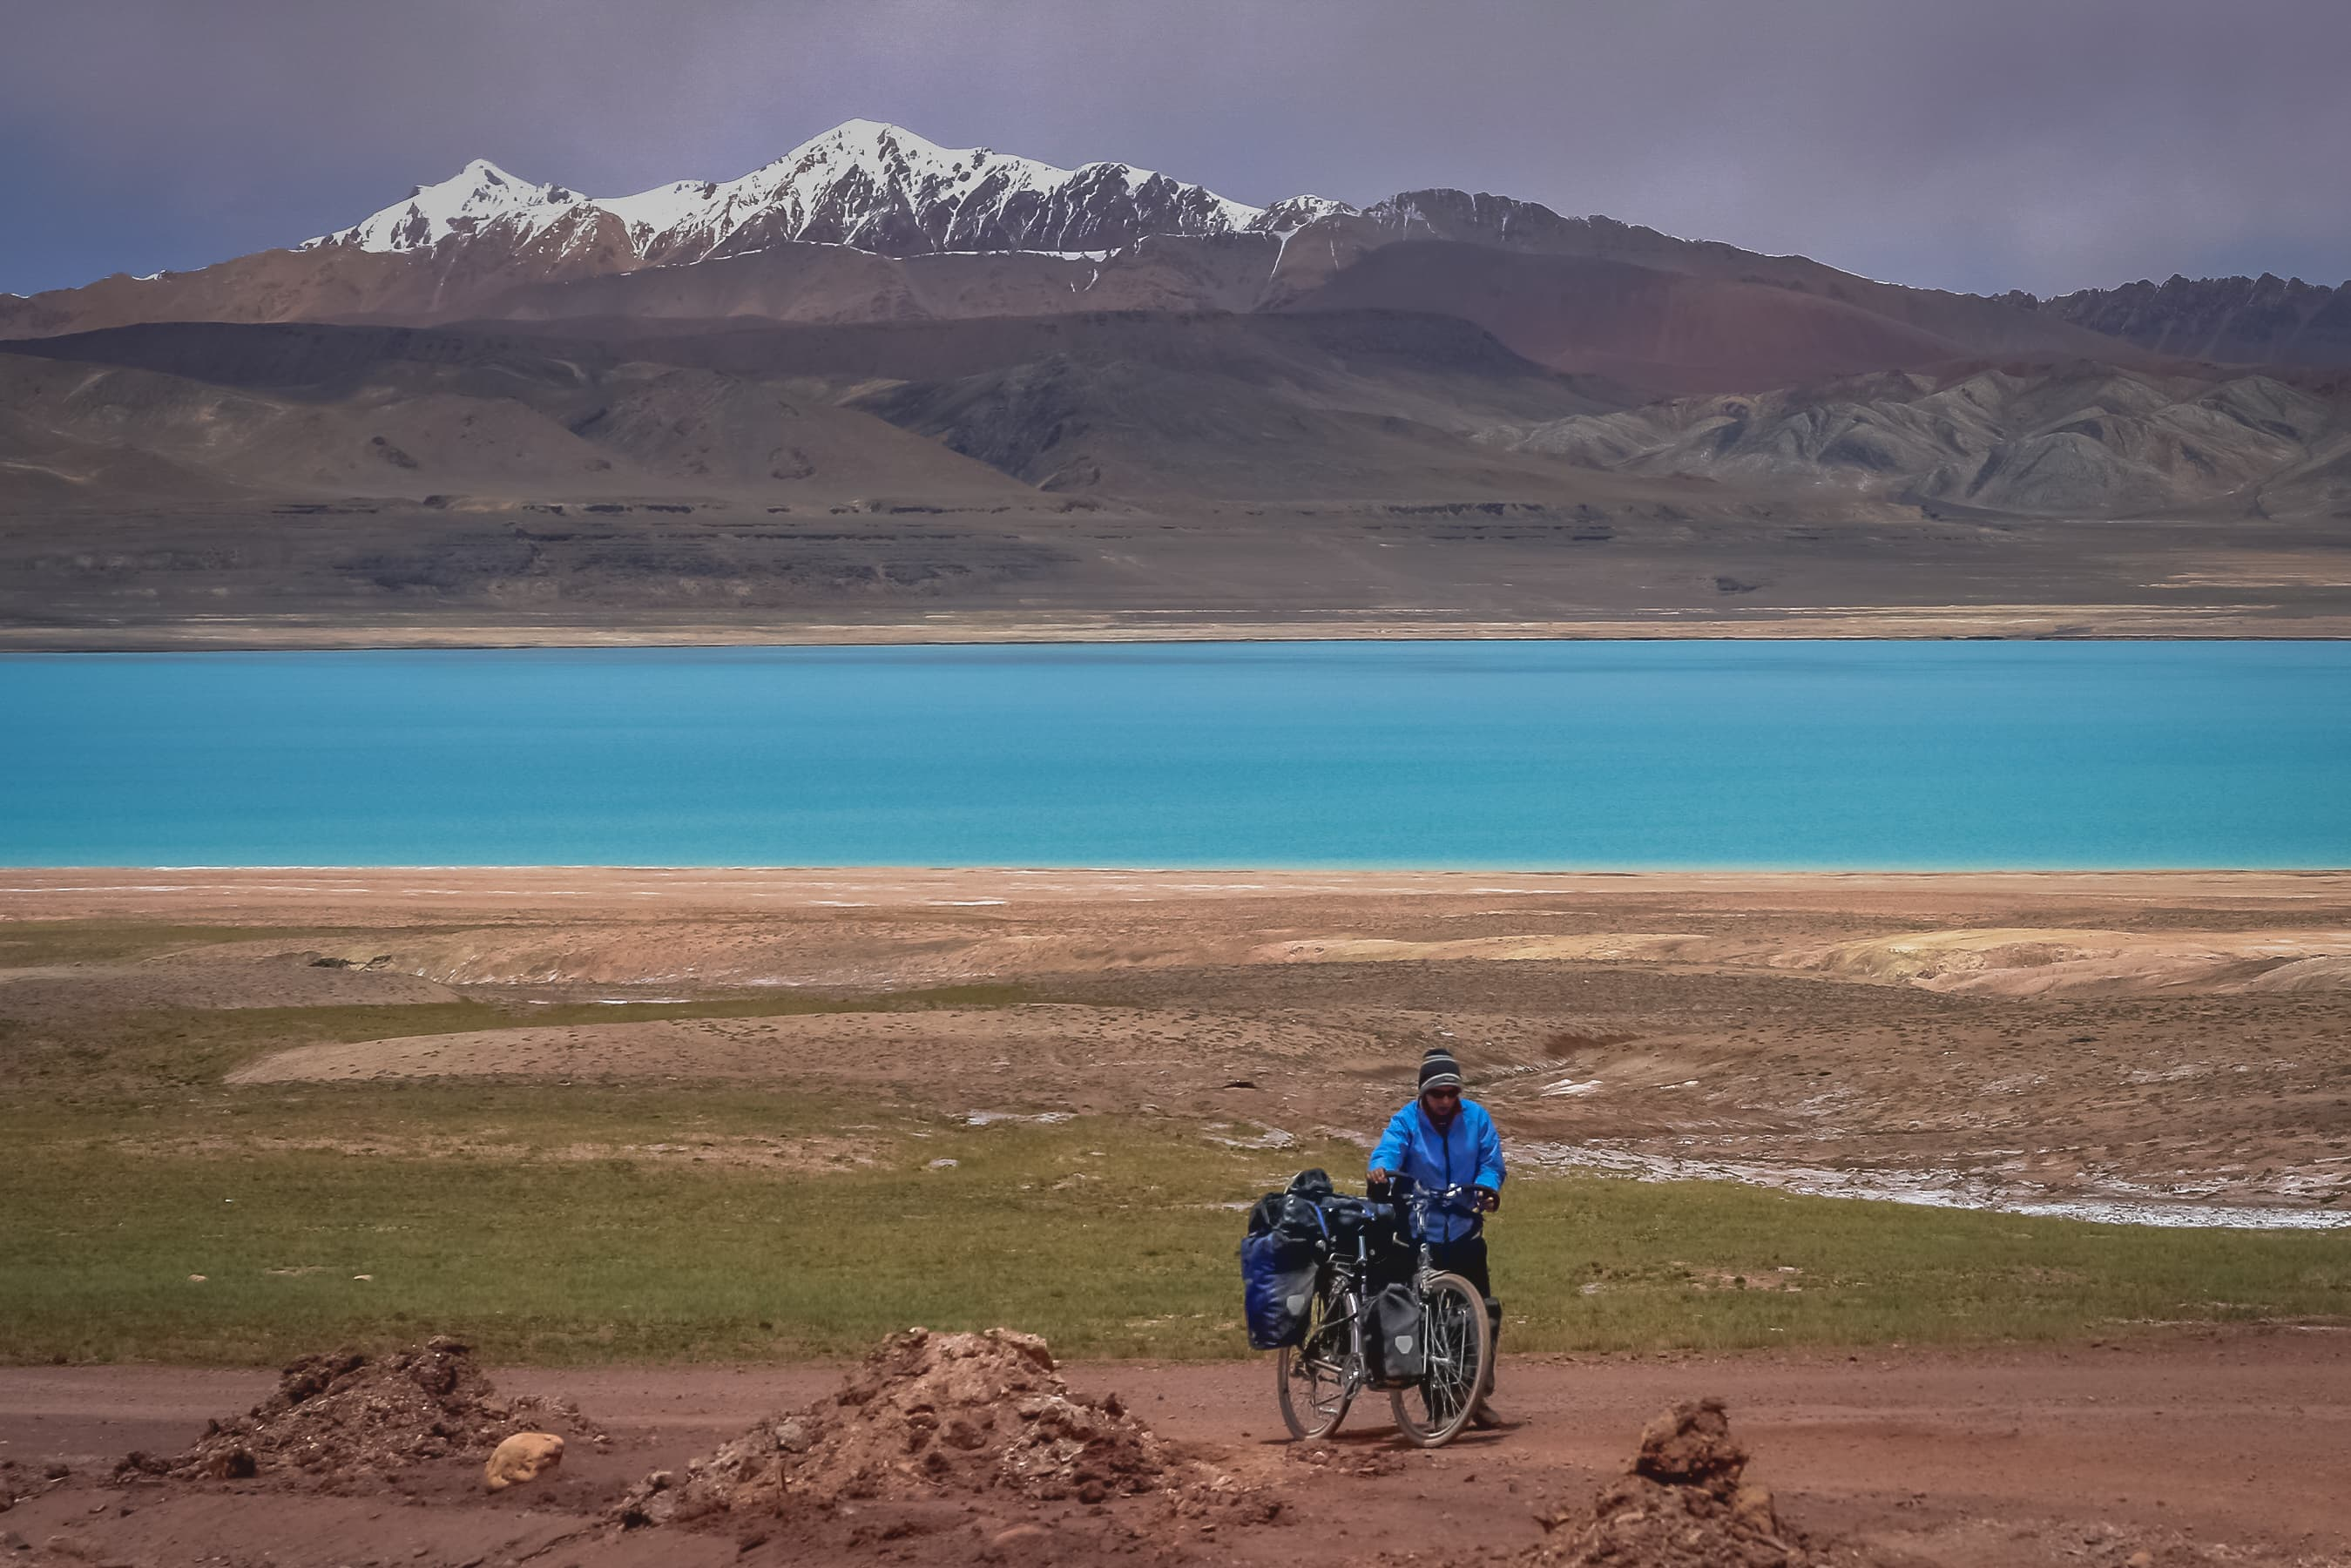 Traveling on bicycle on a mountain road, Tibetan plateau